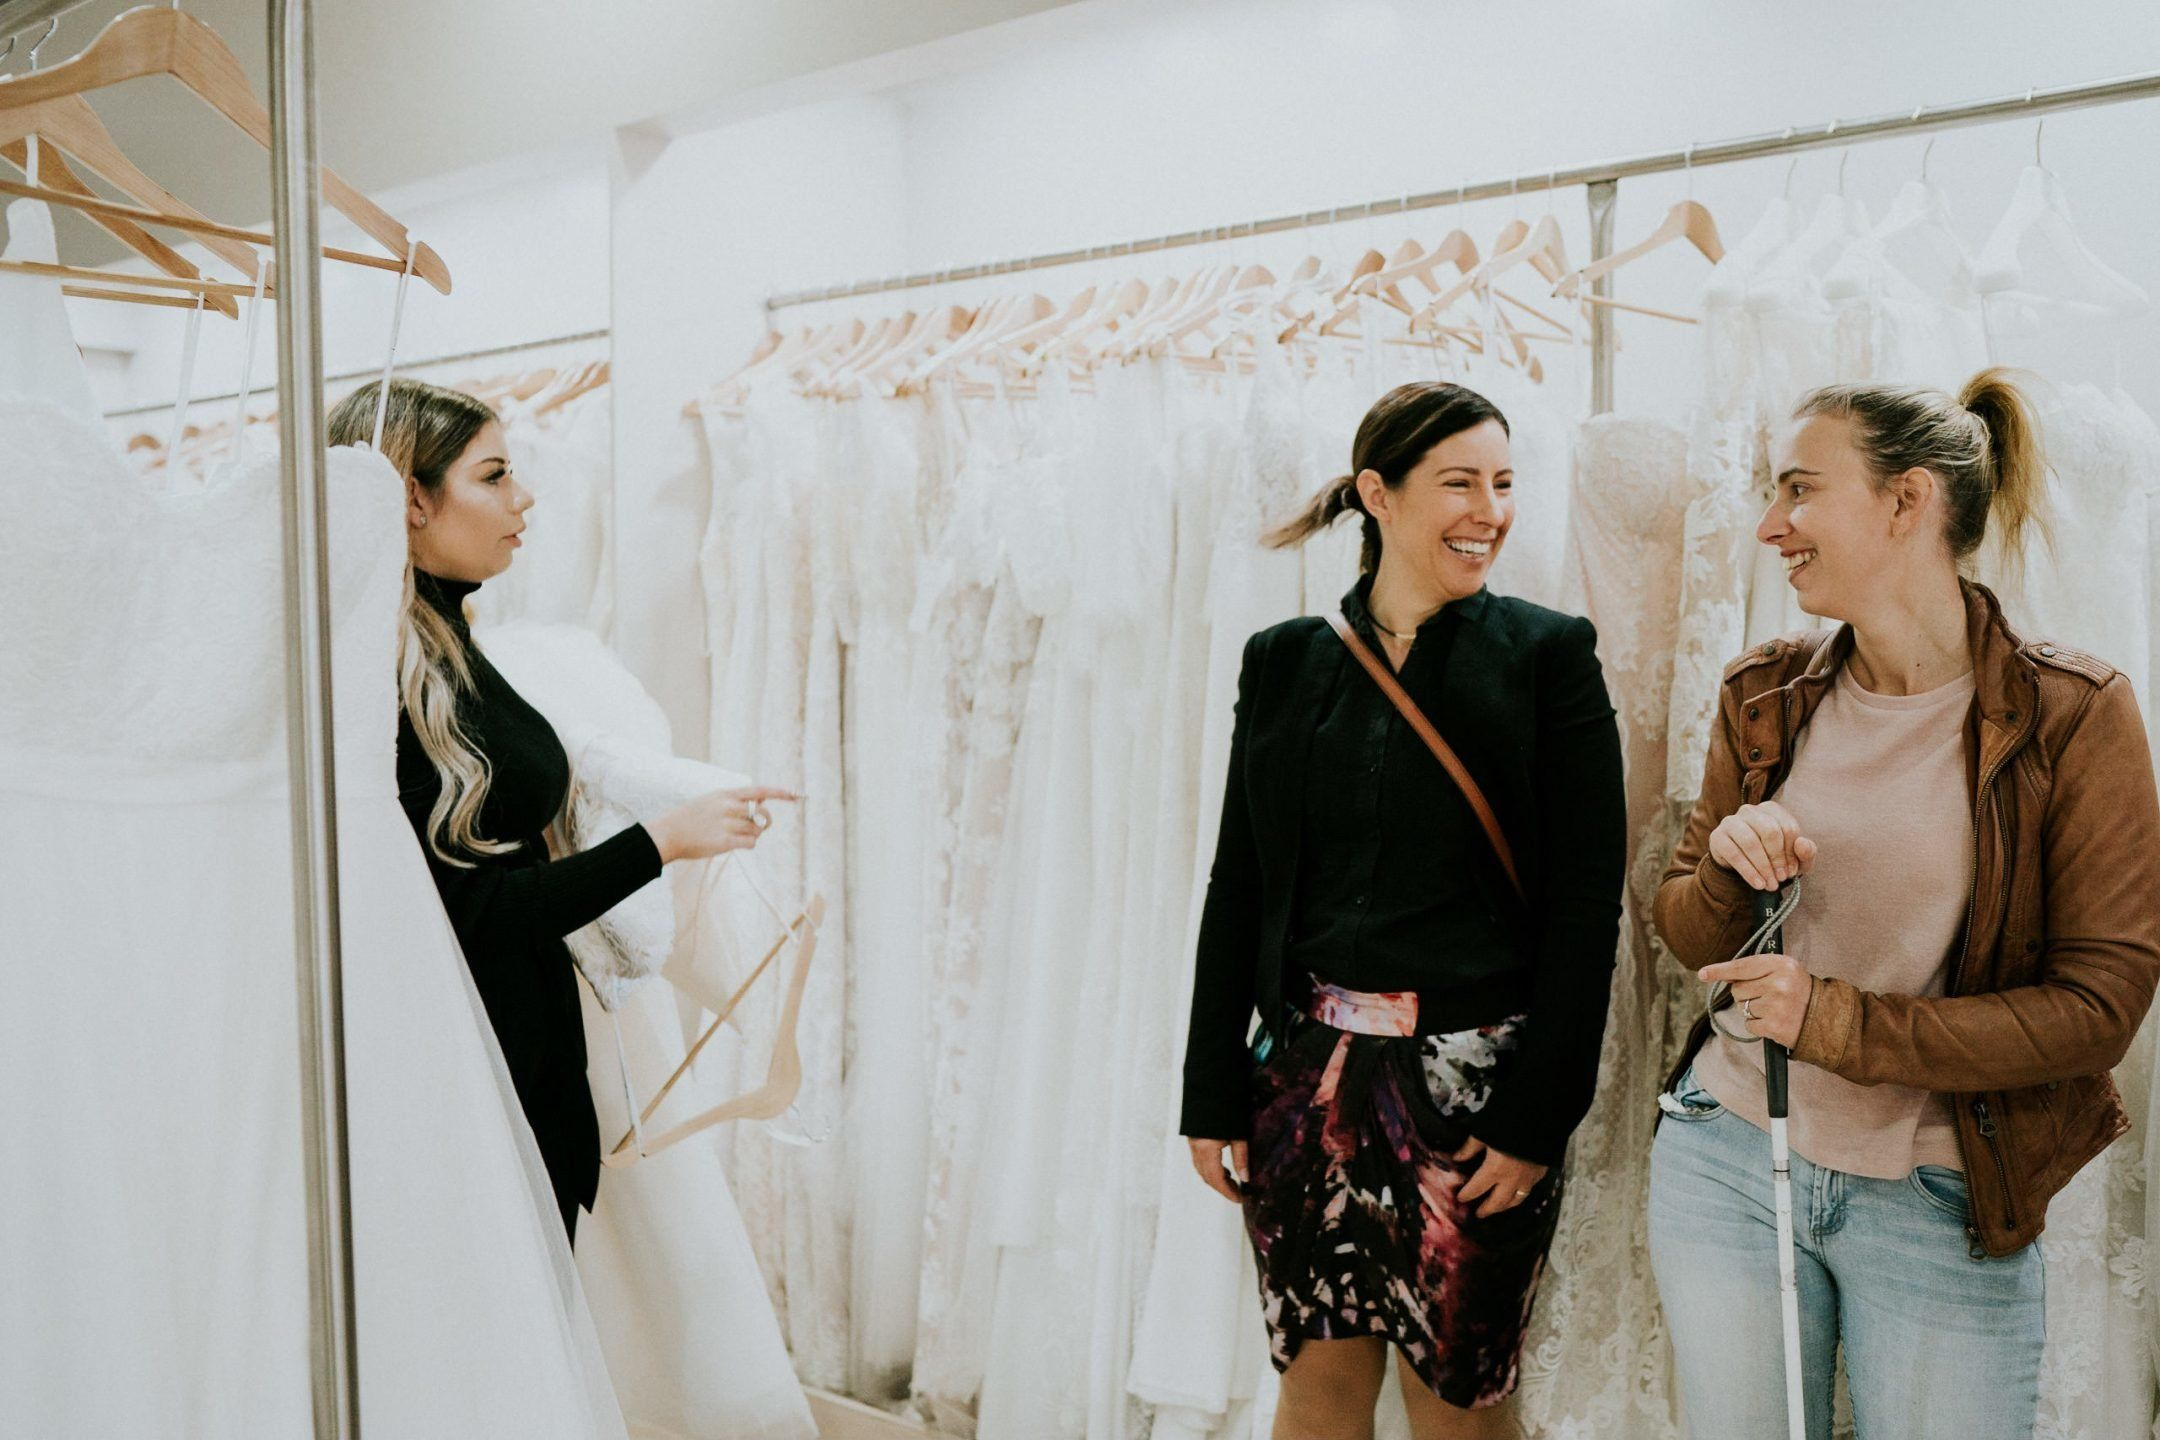 A salesperson, at left, holds a wedding gown in her arms. To the right, Agnew and her friend Jess smile at each other as